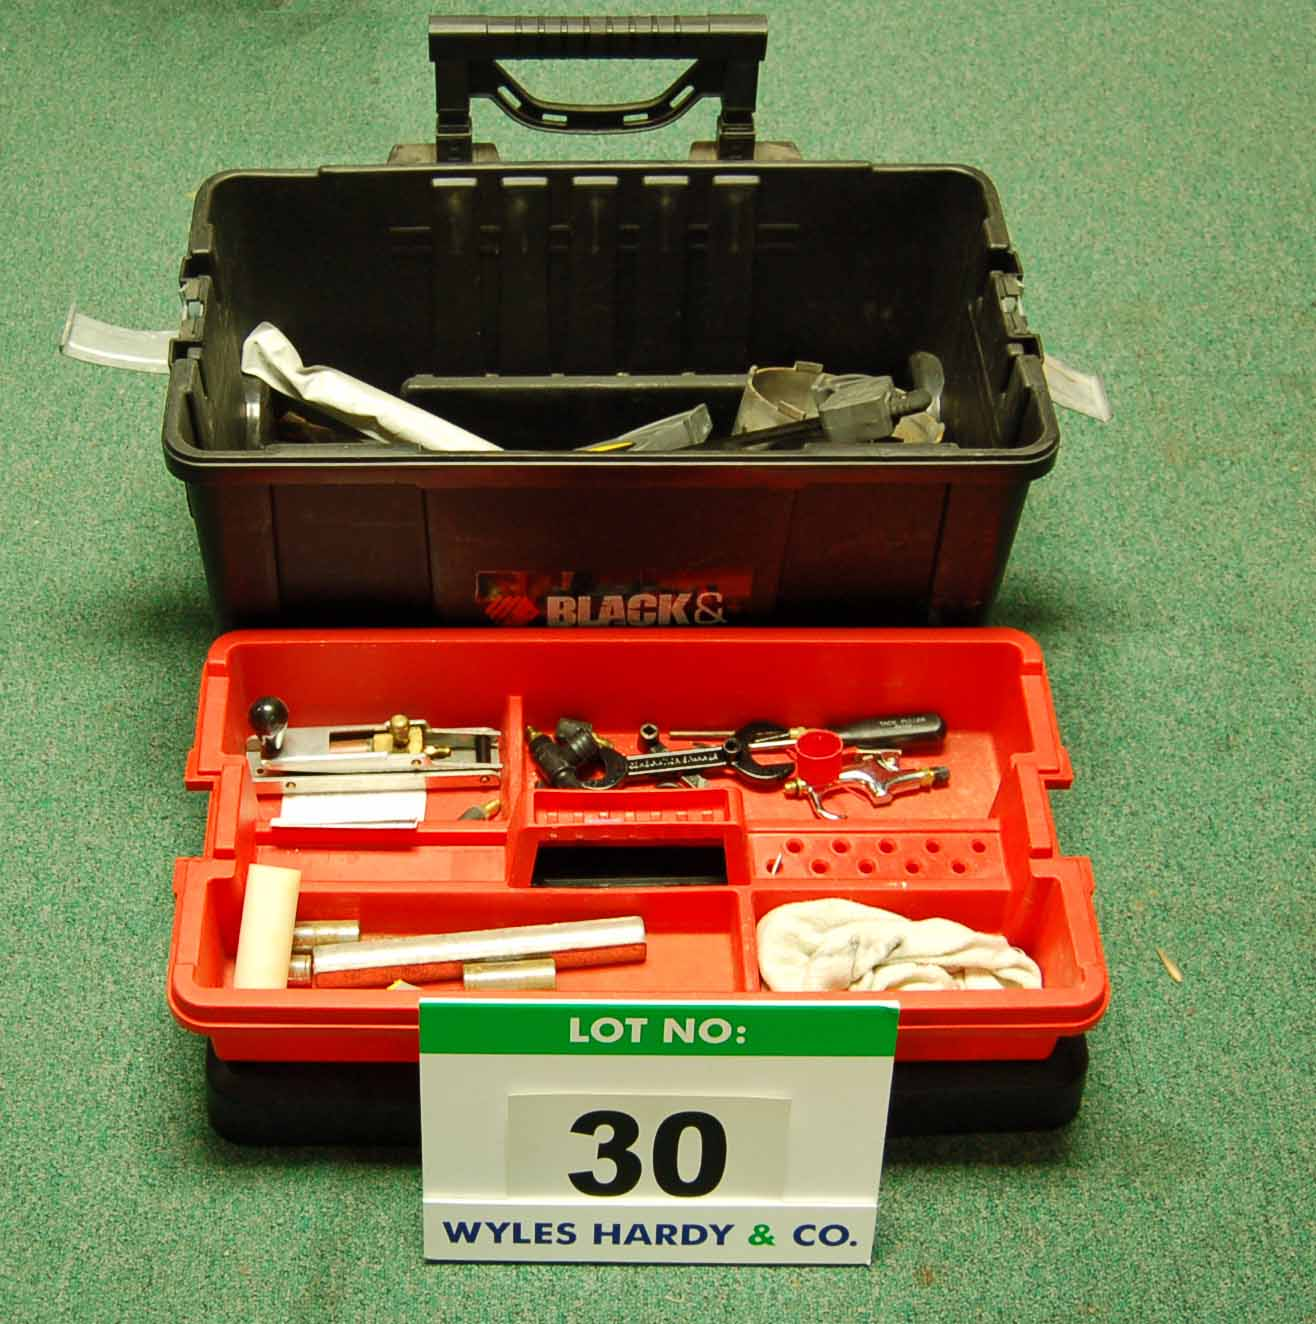 Lot 30 - A Tool Box and Contents (As Photographed)